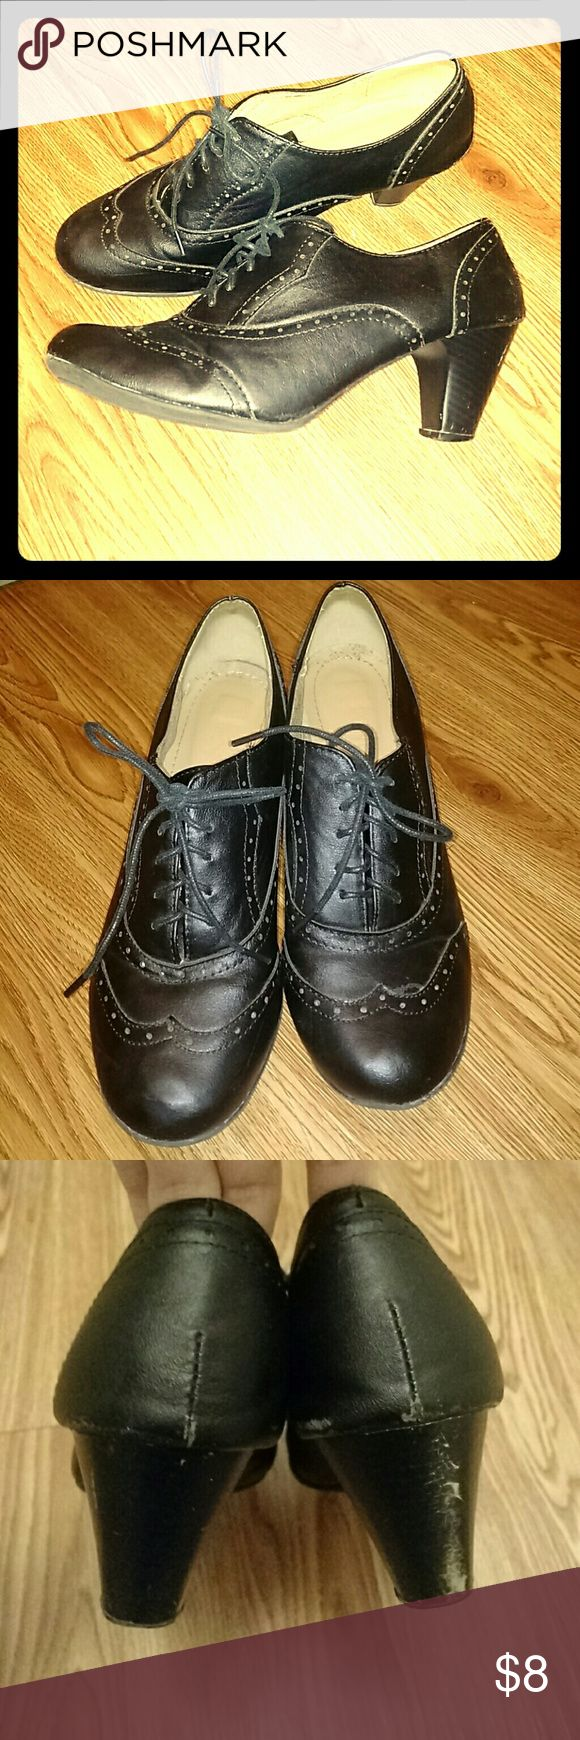 Refresh Amany Cuban heel oxford booties-black These stylish Oxford heels bring a vintage vibe to any outfit! In good condition aside from scuffing on the heels. Refresh Shoes Ankle Boots & Booties